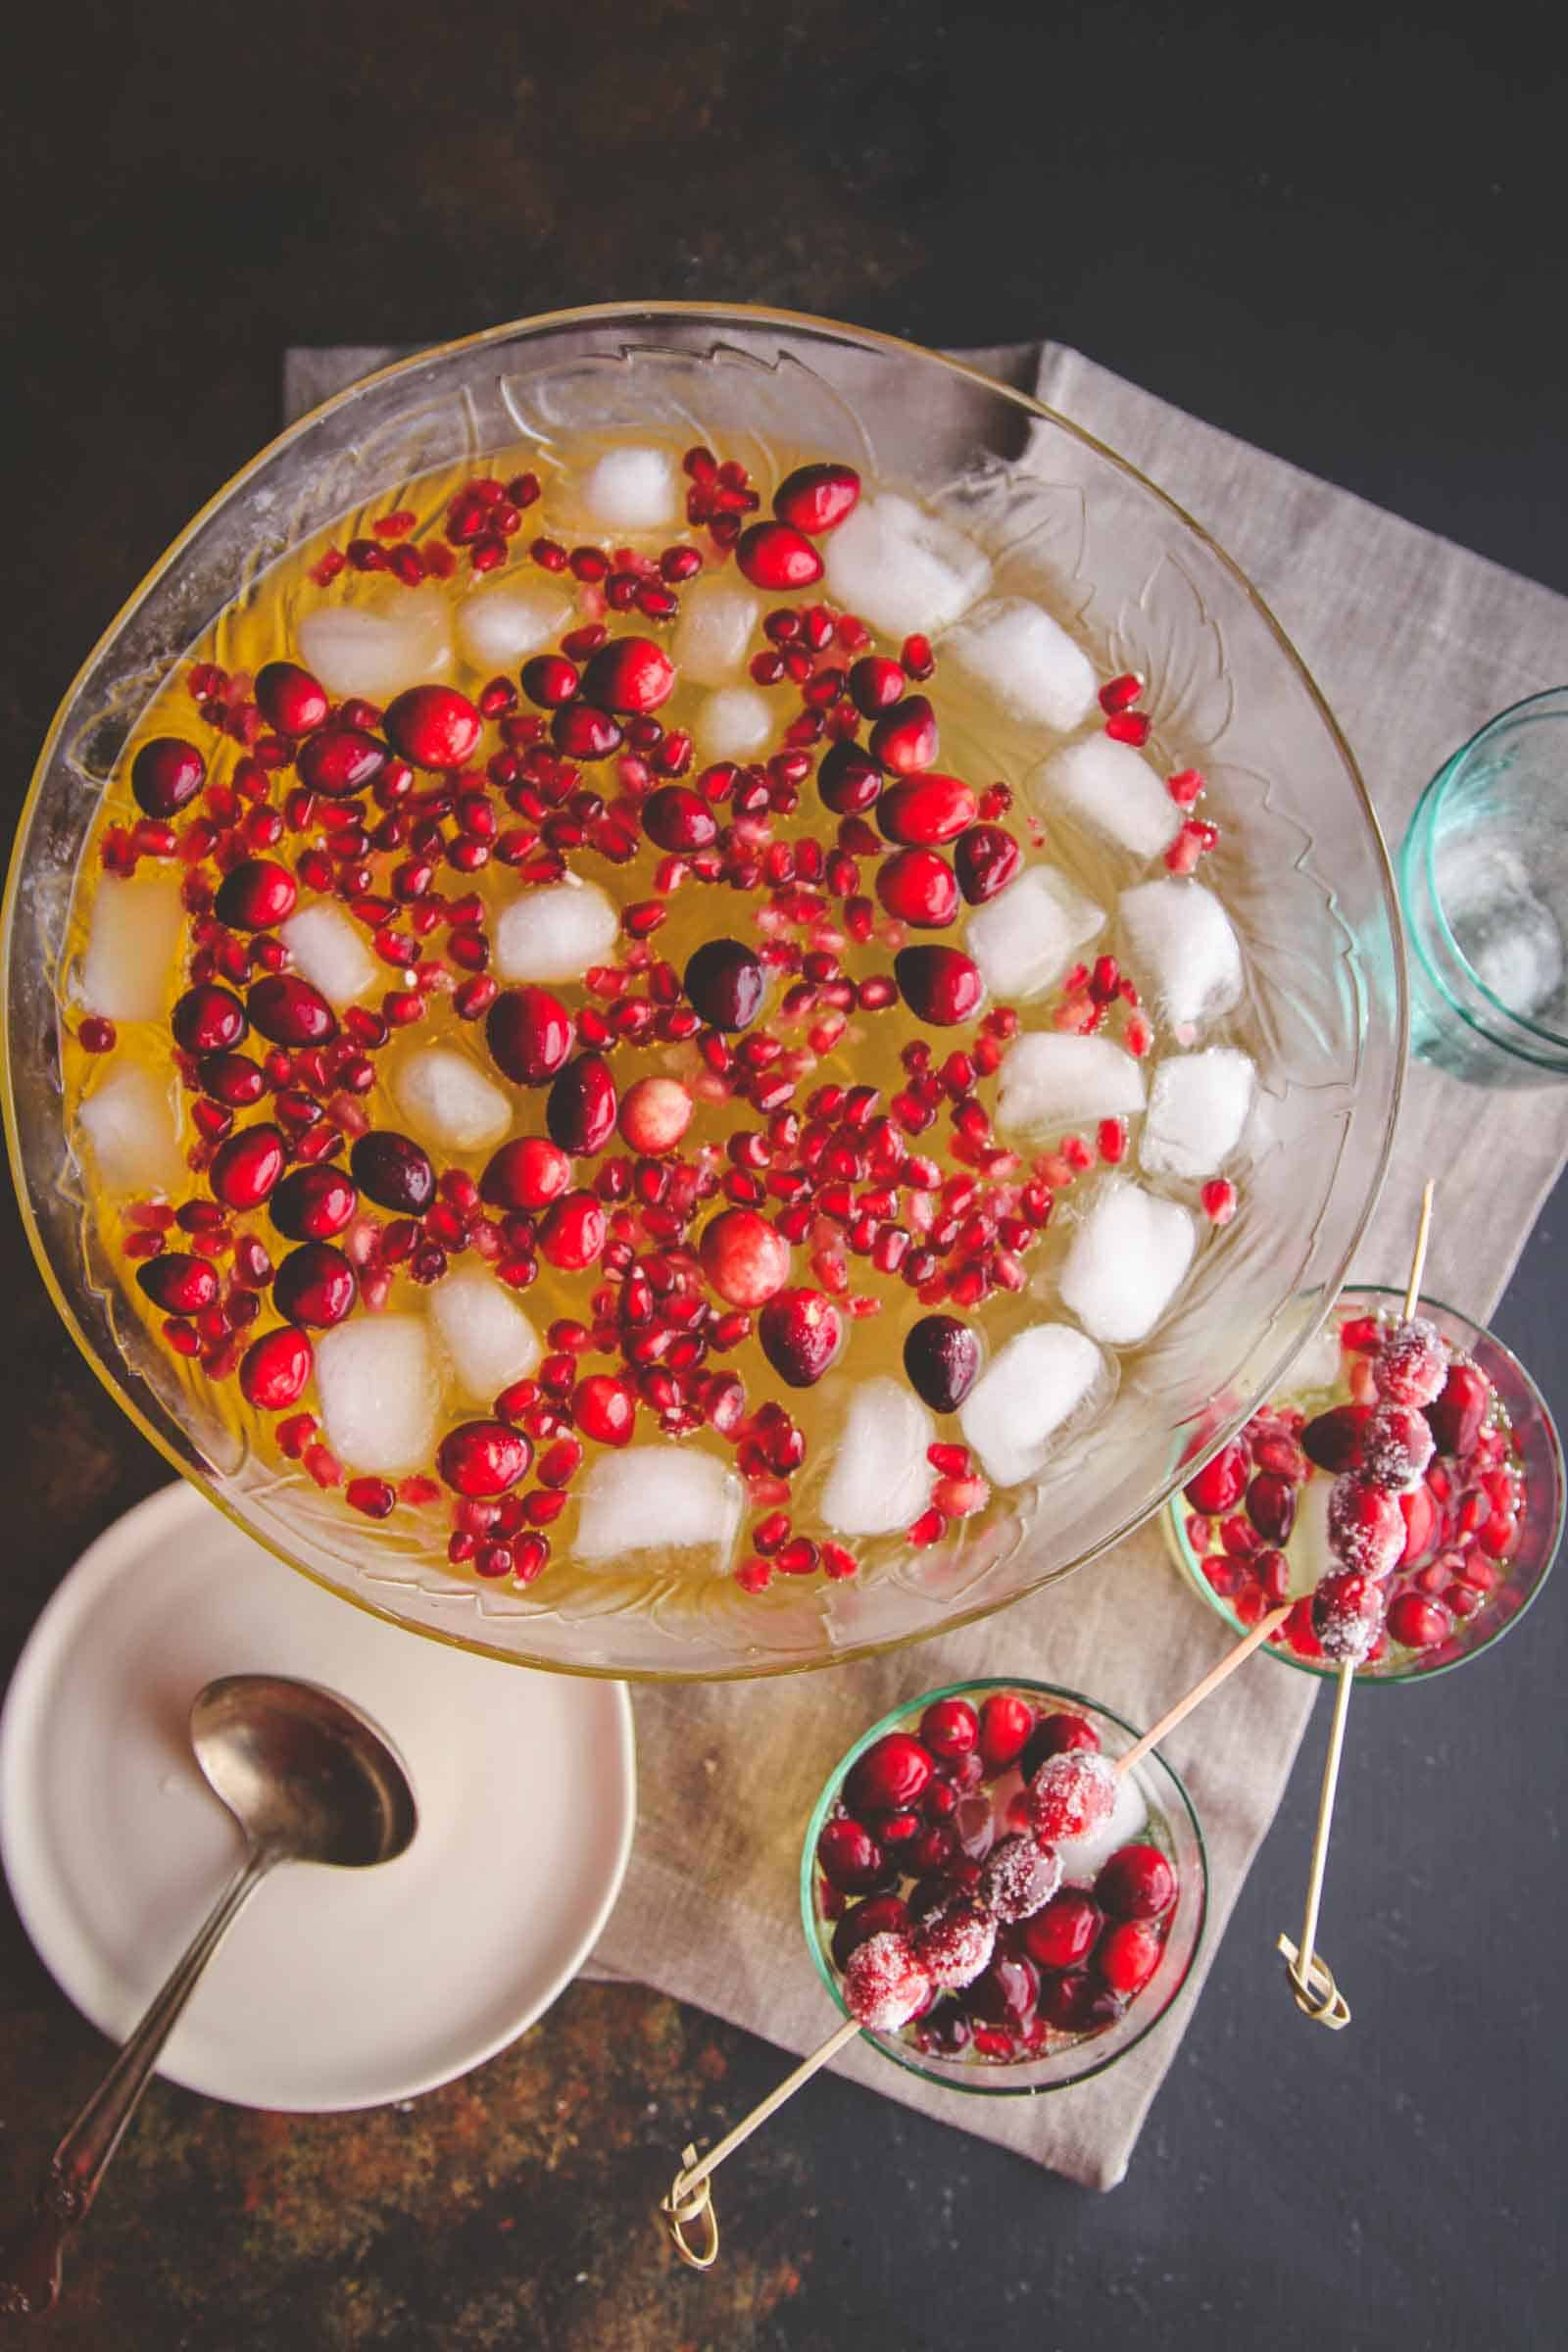 5 ingredient holiday fruit punch with sugared cranberries. A delicious holiday drink recipe